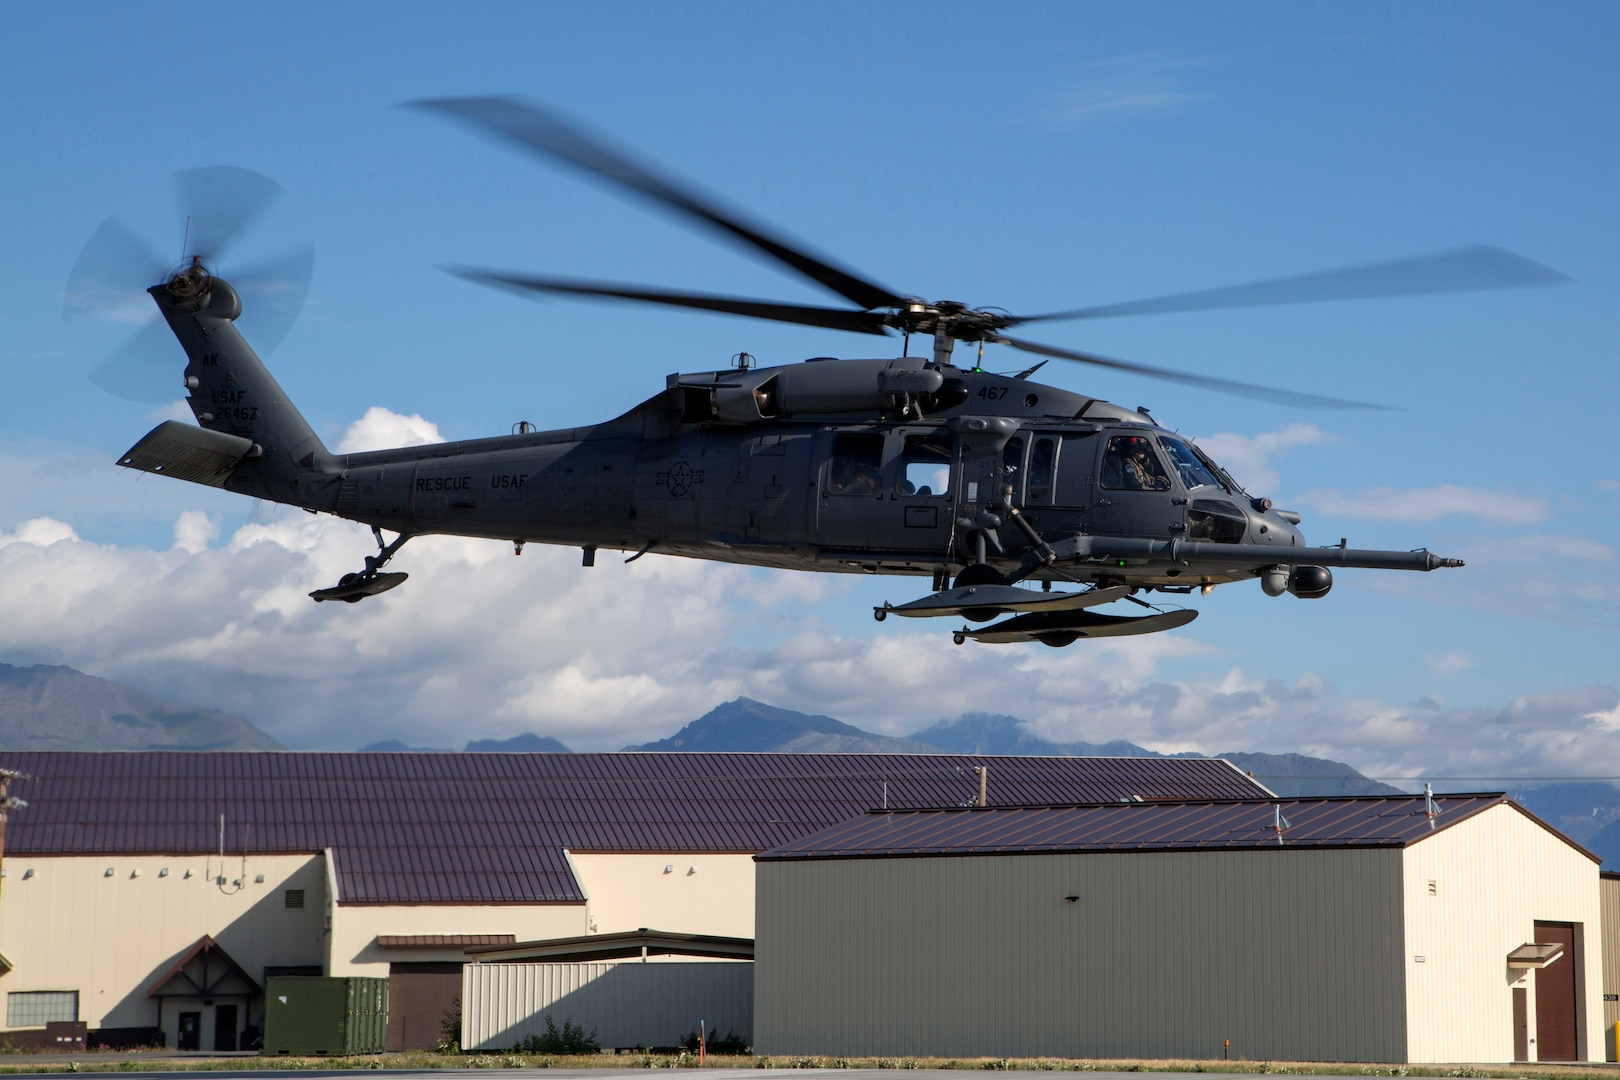 An Alaska Air National Guard HH-60G Pave Hawk helicopter, assigned to the 210th Rescue Squadron, takes off from Joint Base Elmendorf-Richardson, Alaska, July 23, 2015. The 210th Rescue Squadron provides emergency rescue services for the citizens of Alaska in addition to training for wartime combat search-and-rescue missions.